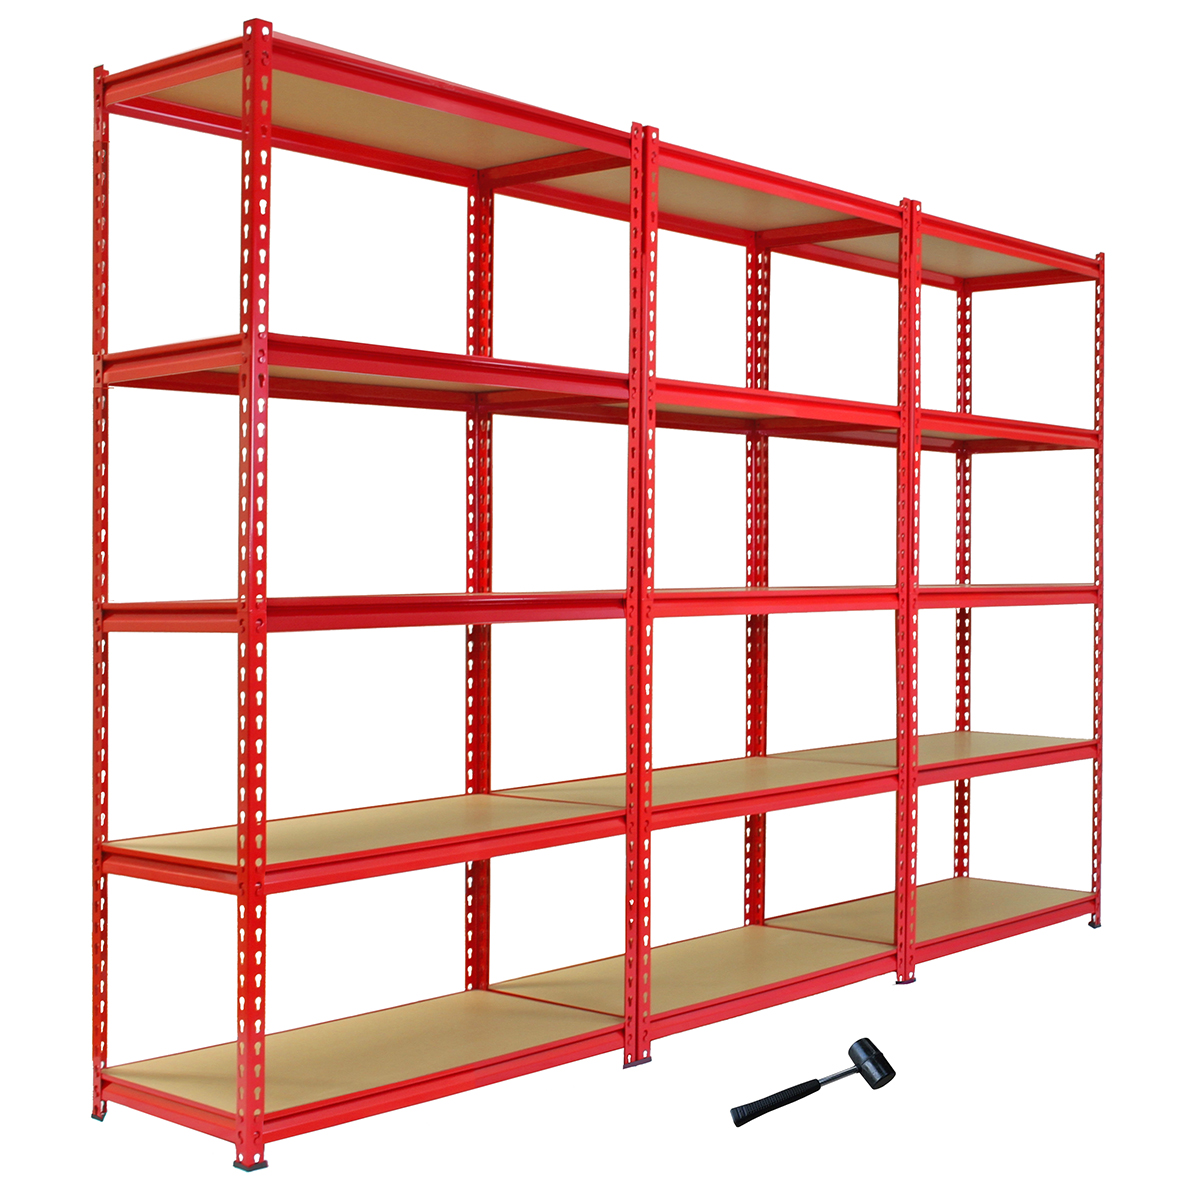 Heavy Duty Garage Storage Racks : Garage shelving racking cm storage units heavy duty